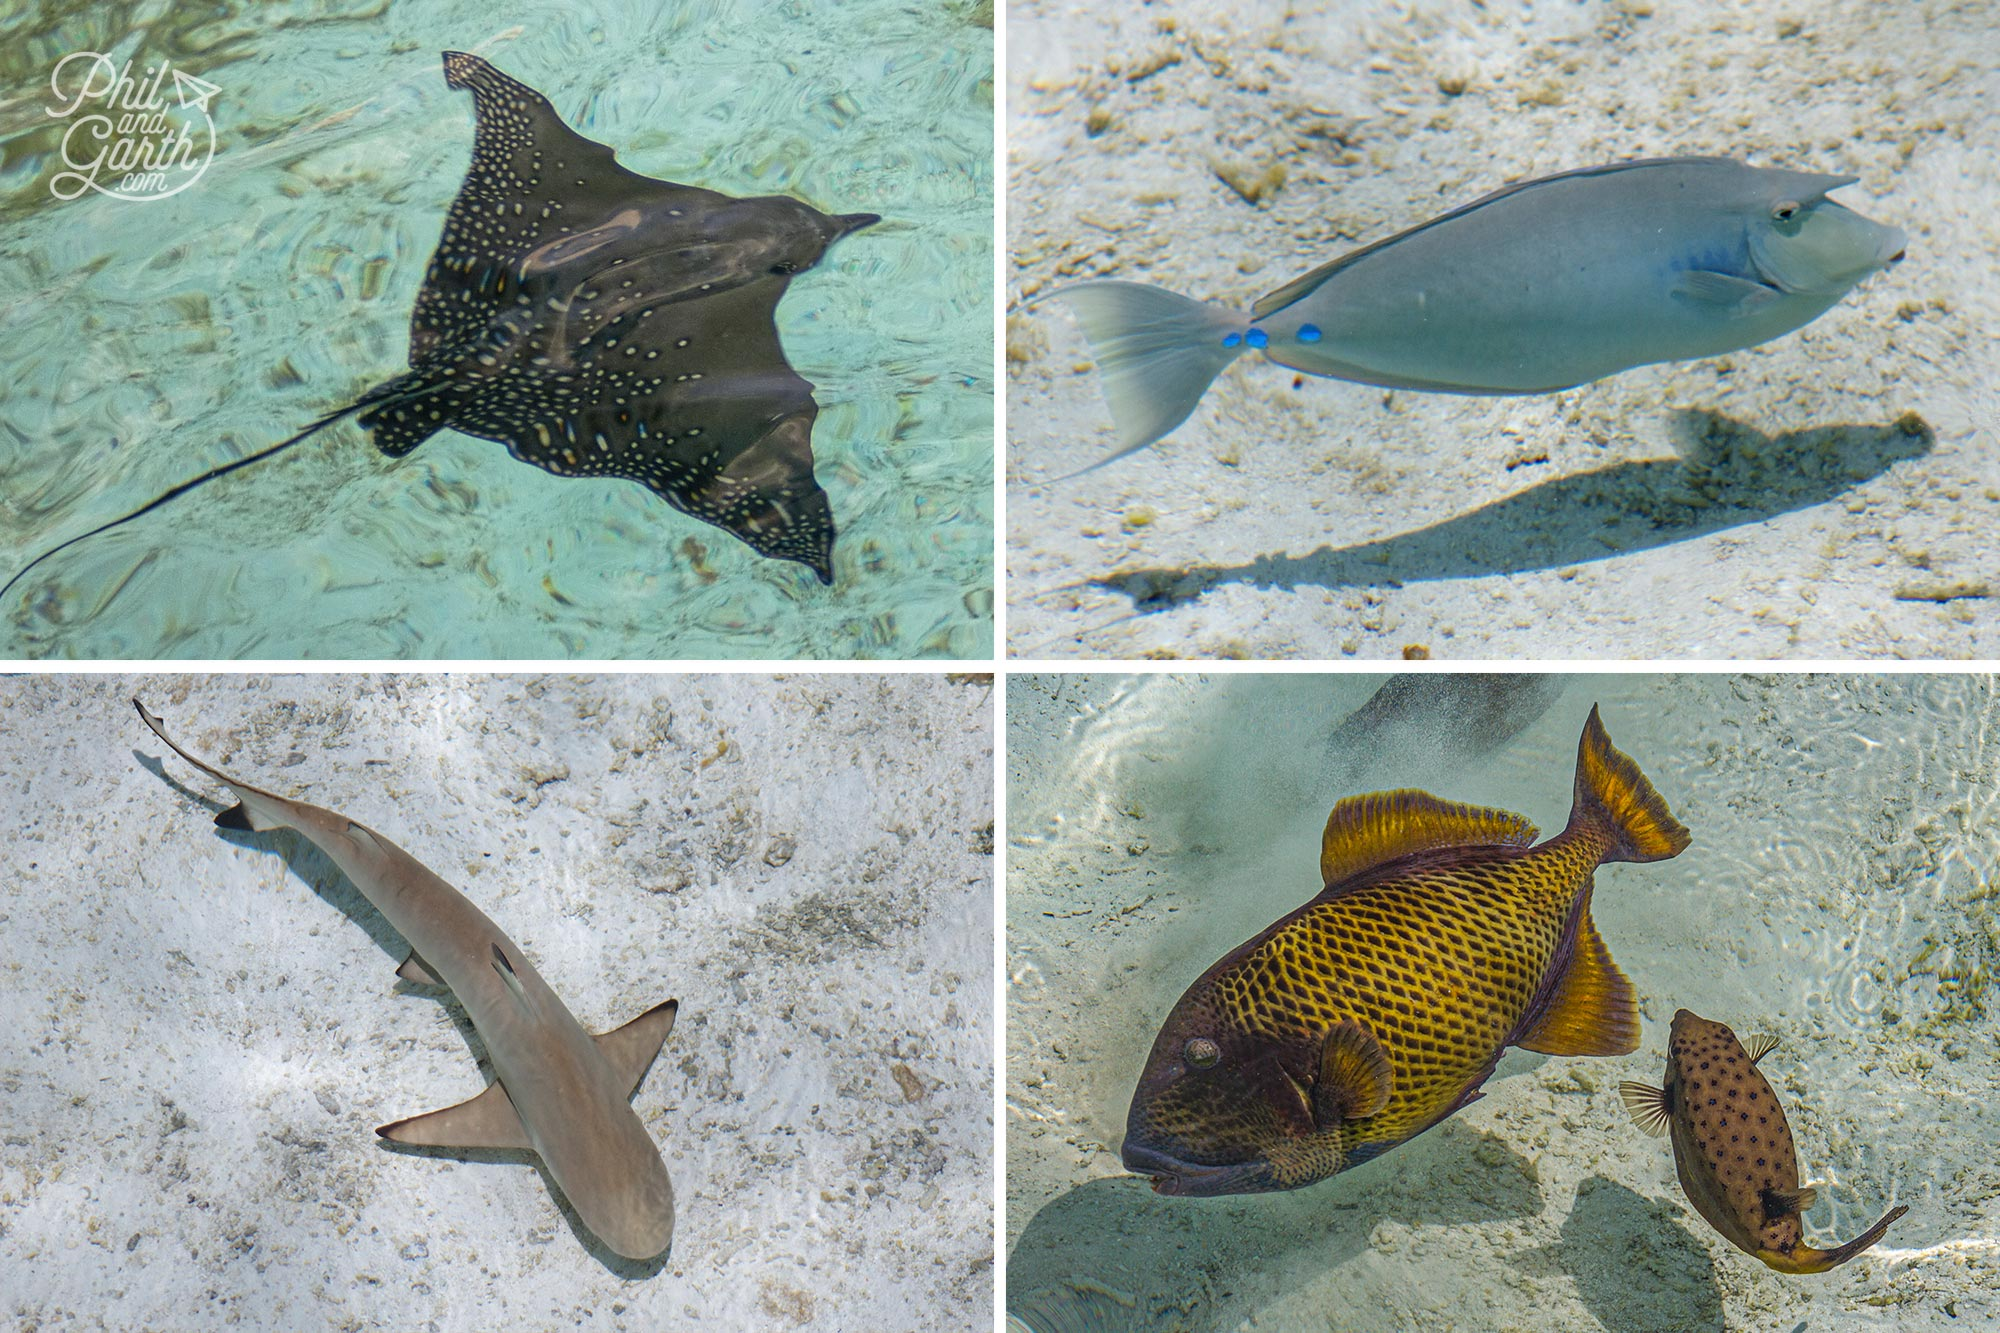 Some of the marine life you can see just looking down at the water